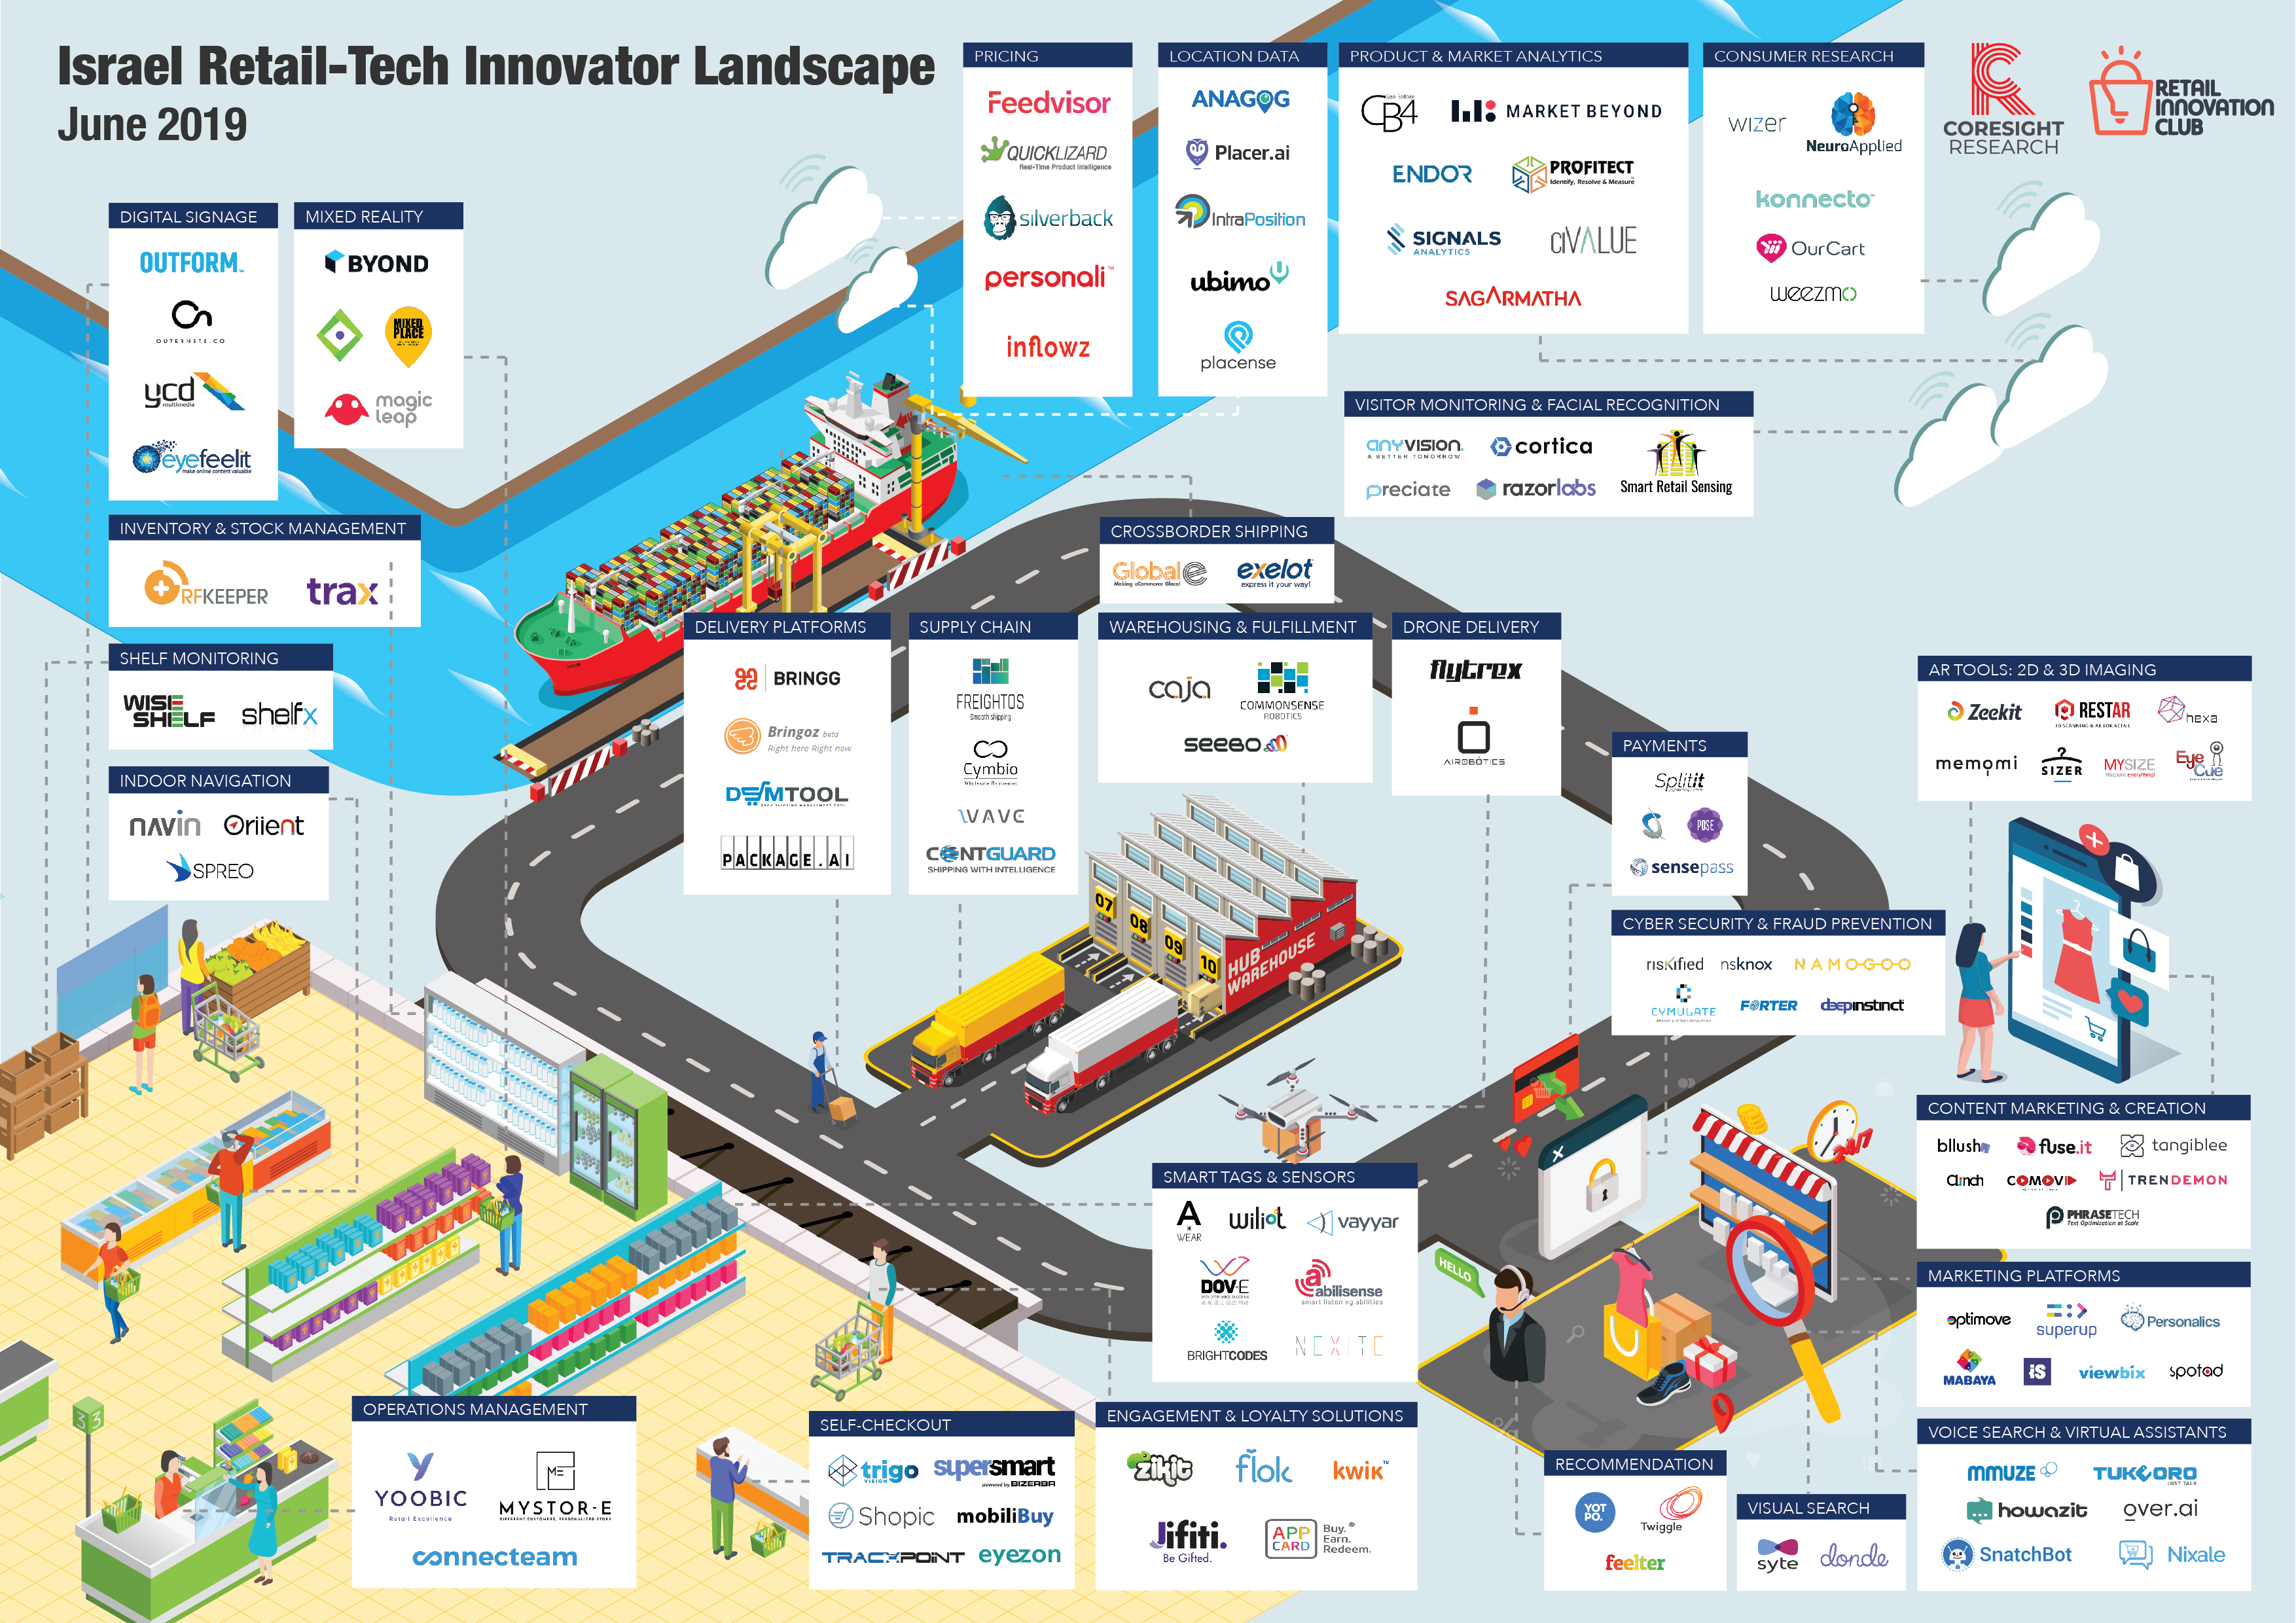 Israel Retail-Tech Innovator Landscape | Coresight Research